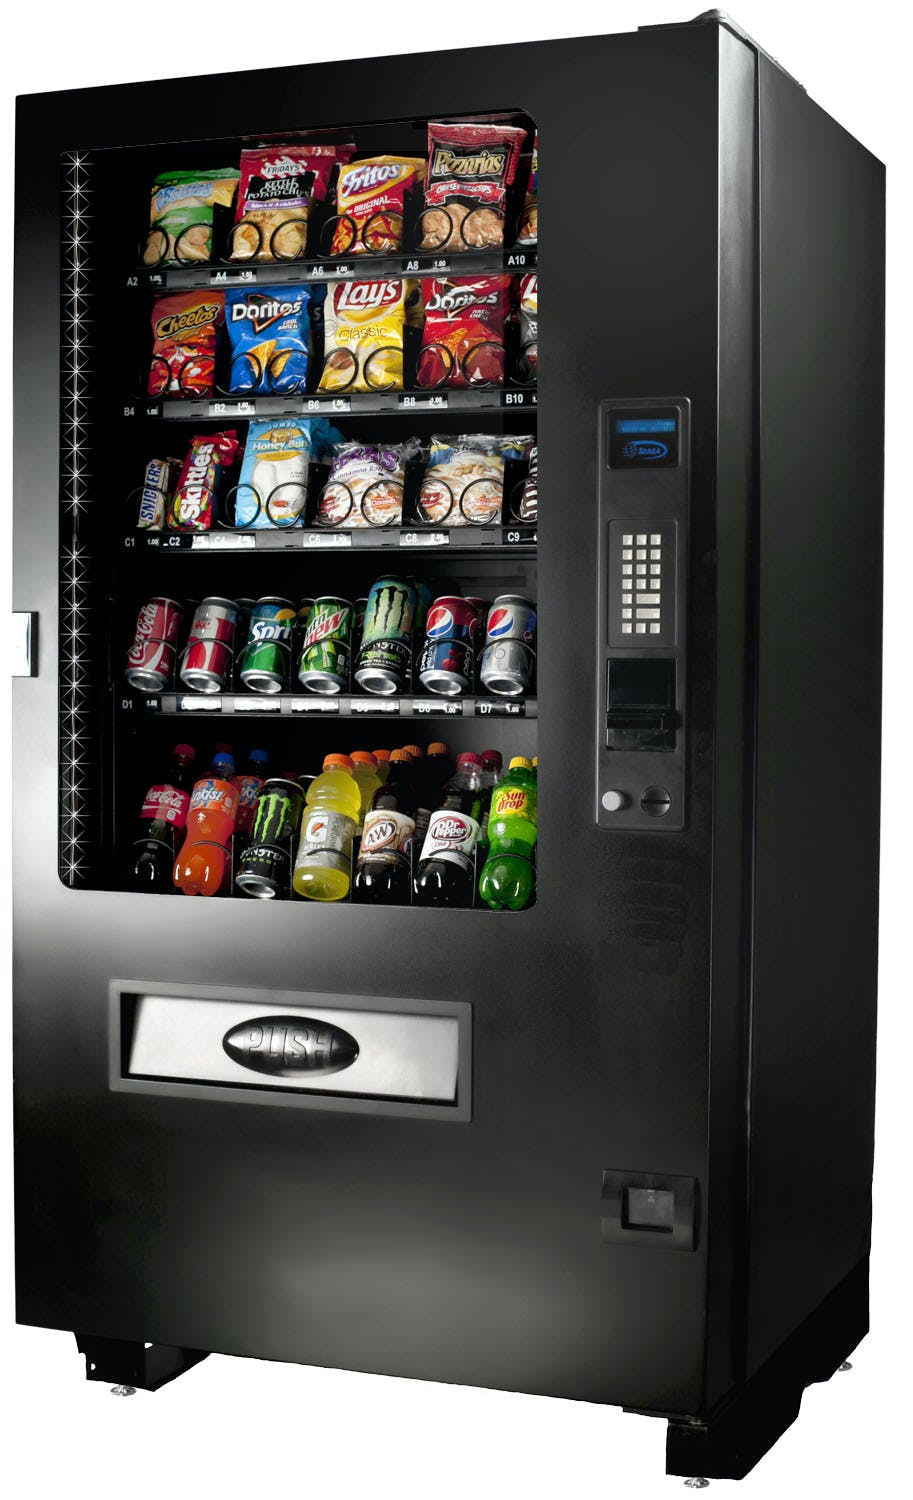 Shermco model 8 combo vending machine Vending machine sold by Shermco Vending